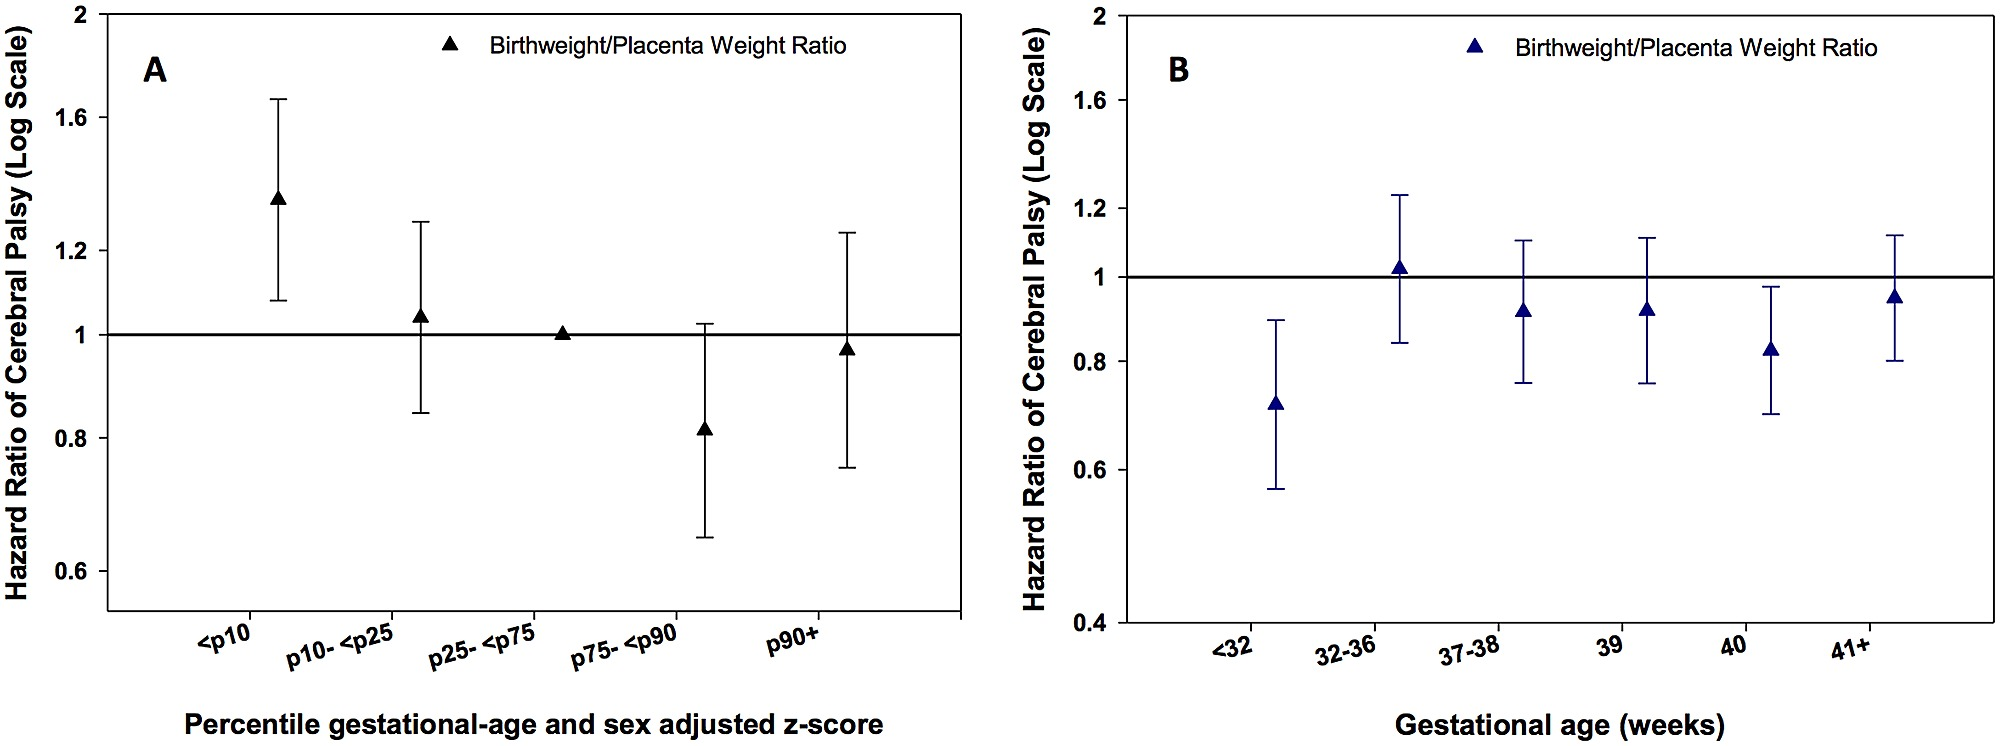 Disproportionate Fetal Growth and the Risk for Congenital